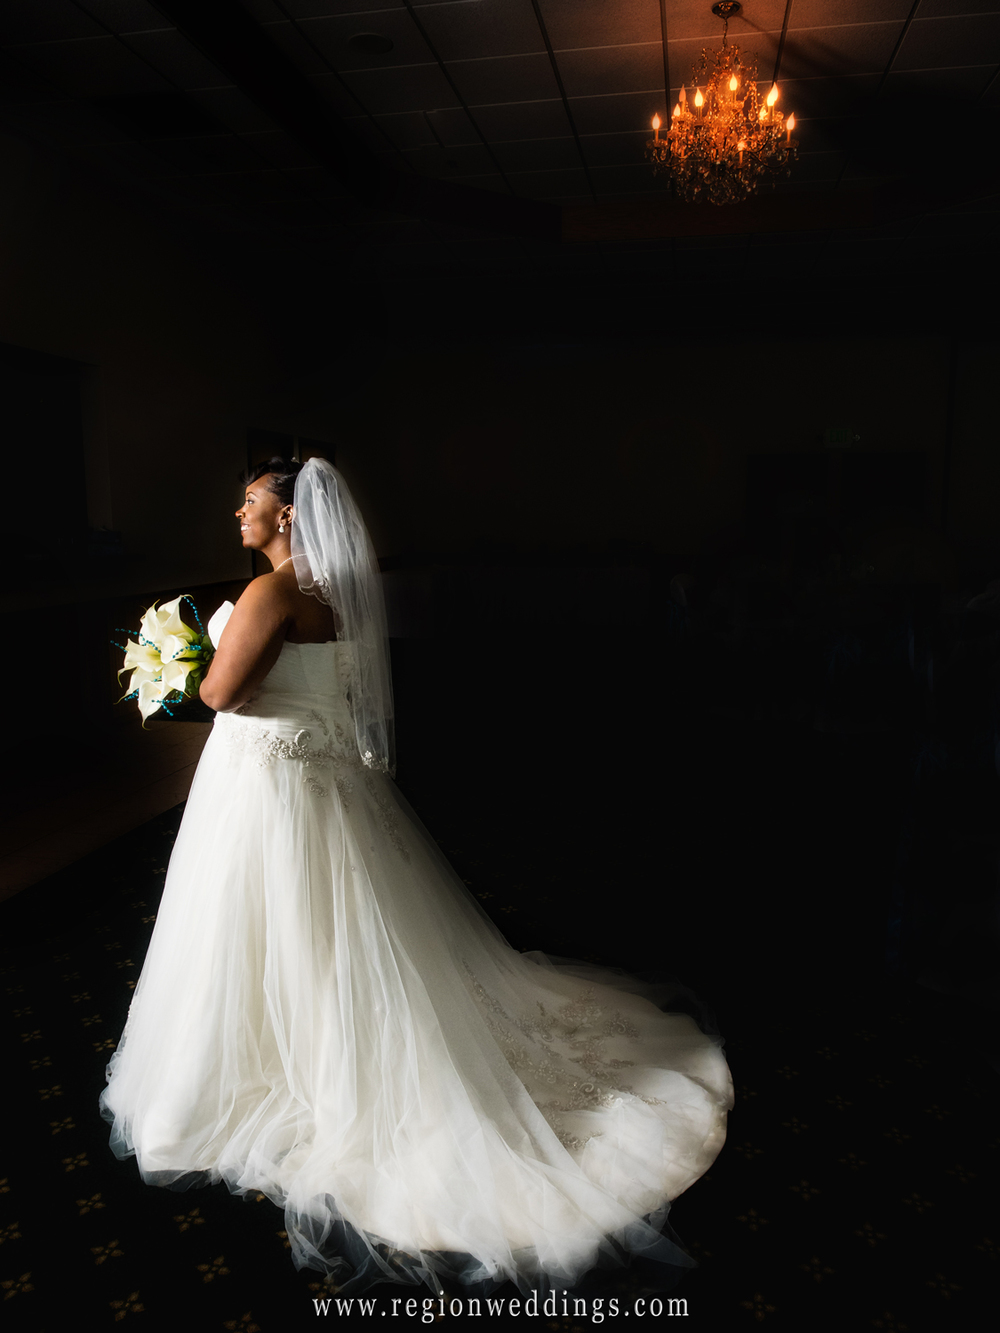 The bride shows off the back of her dress in this dramatic bridal portrait.